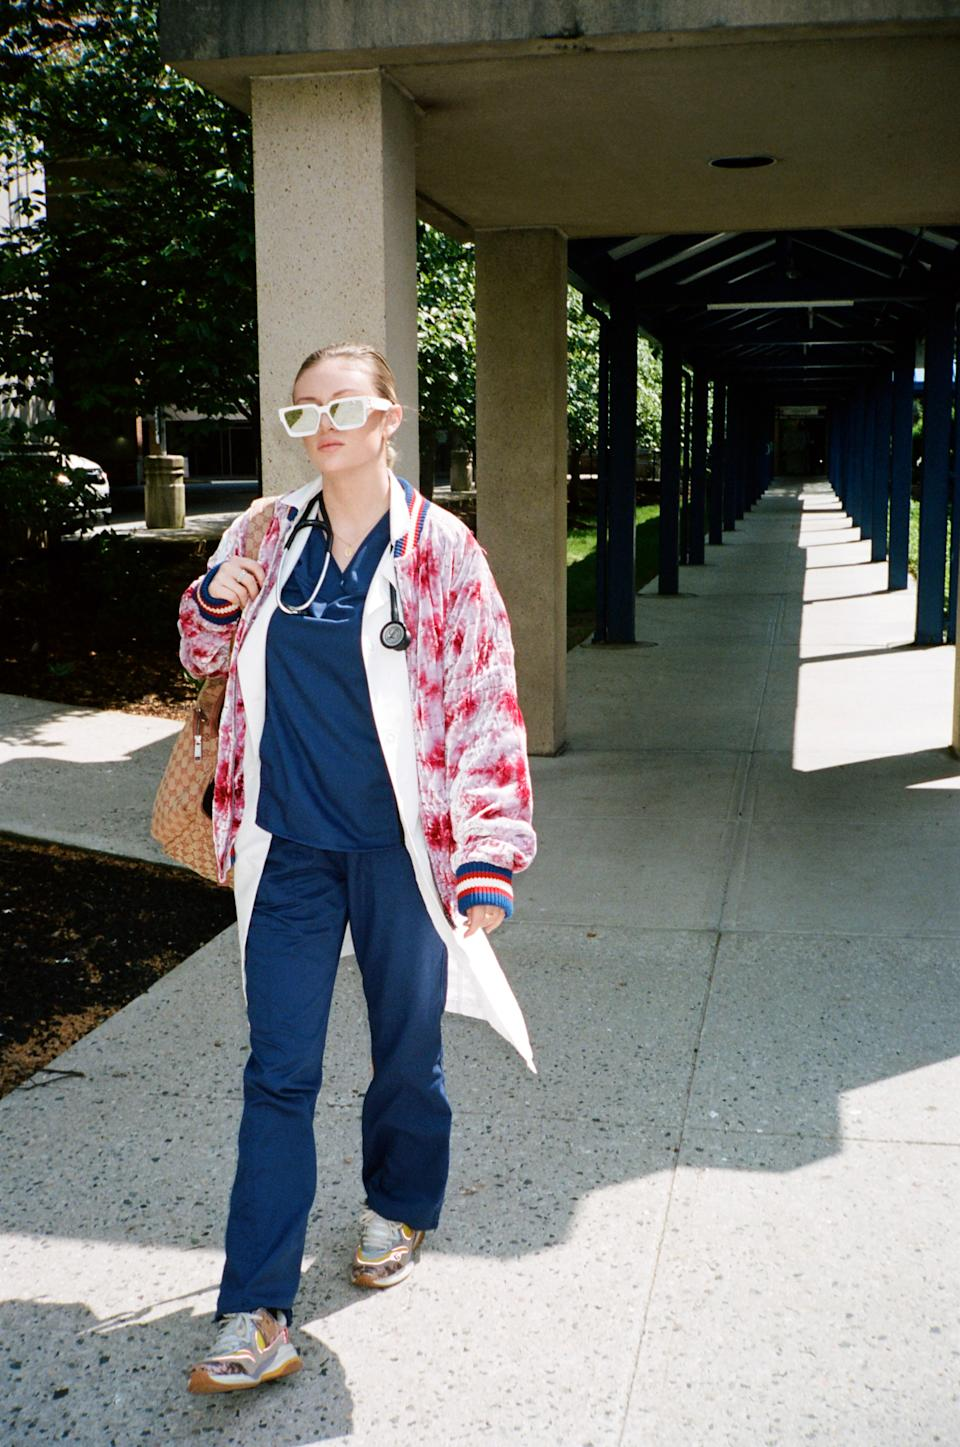 Danielle on her way to work as a Certified Cardiographic Technician. Photo: supplied.